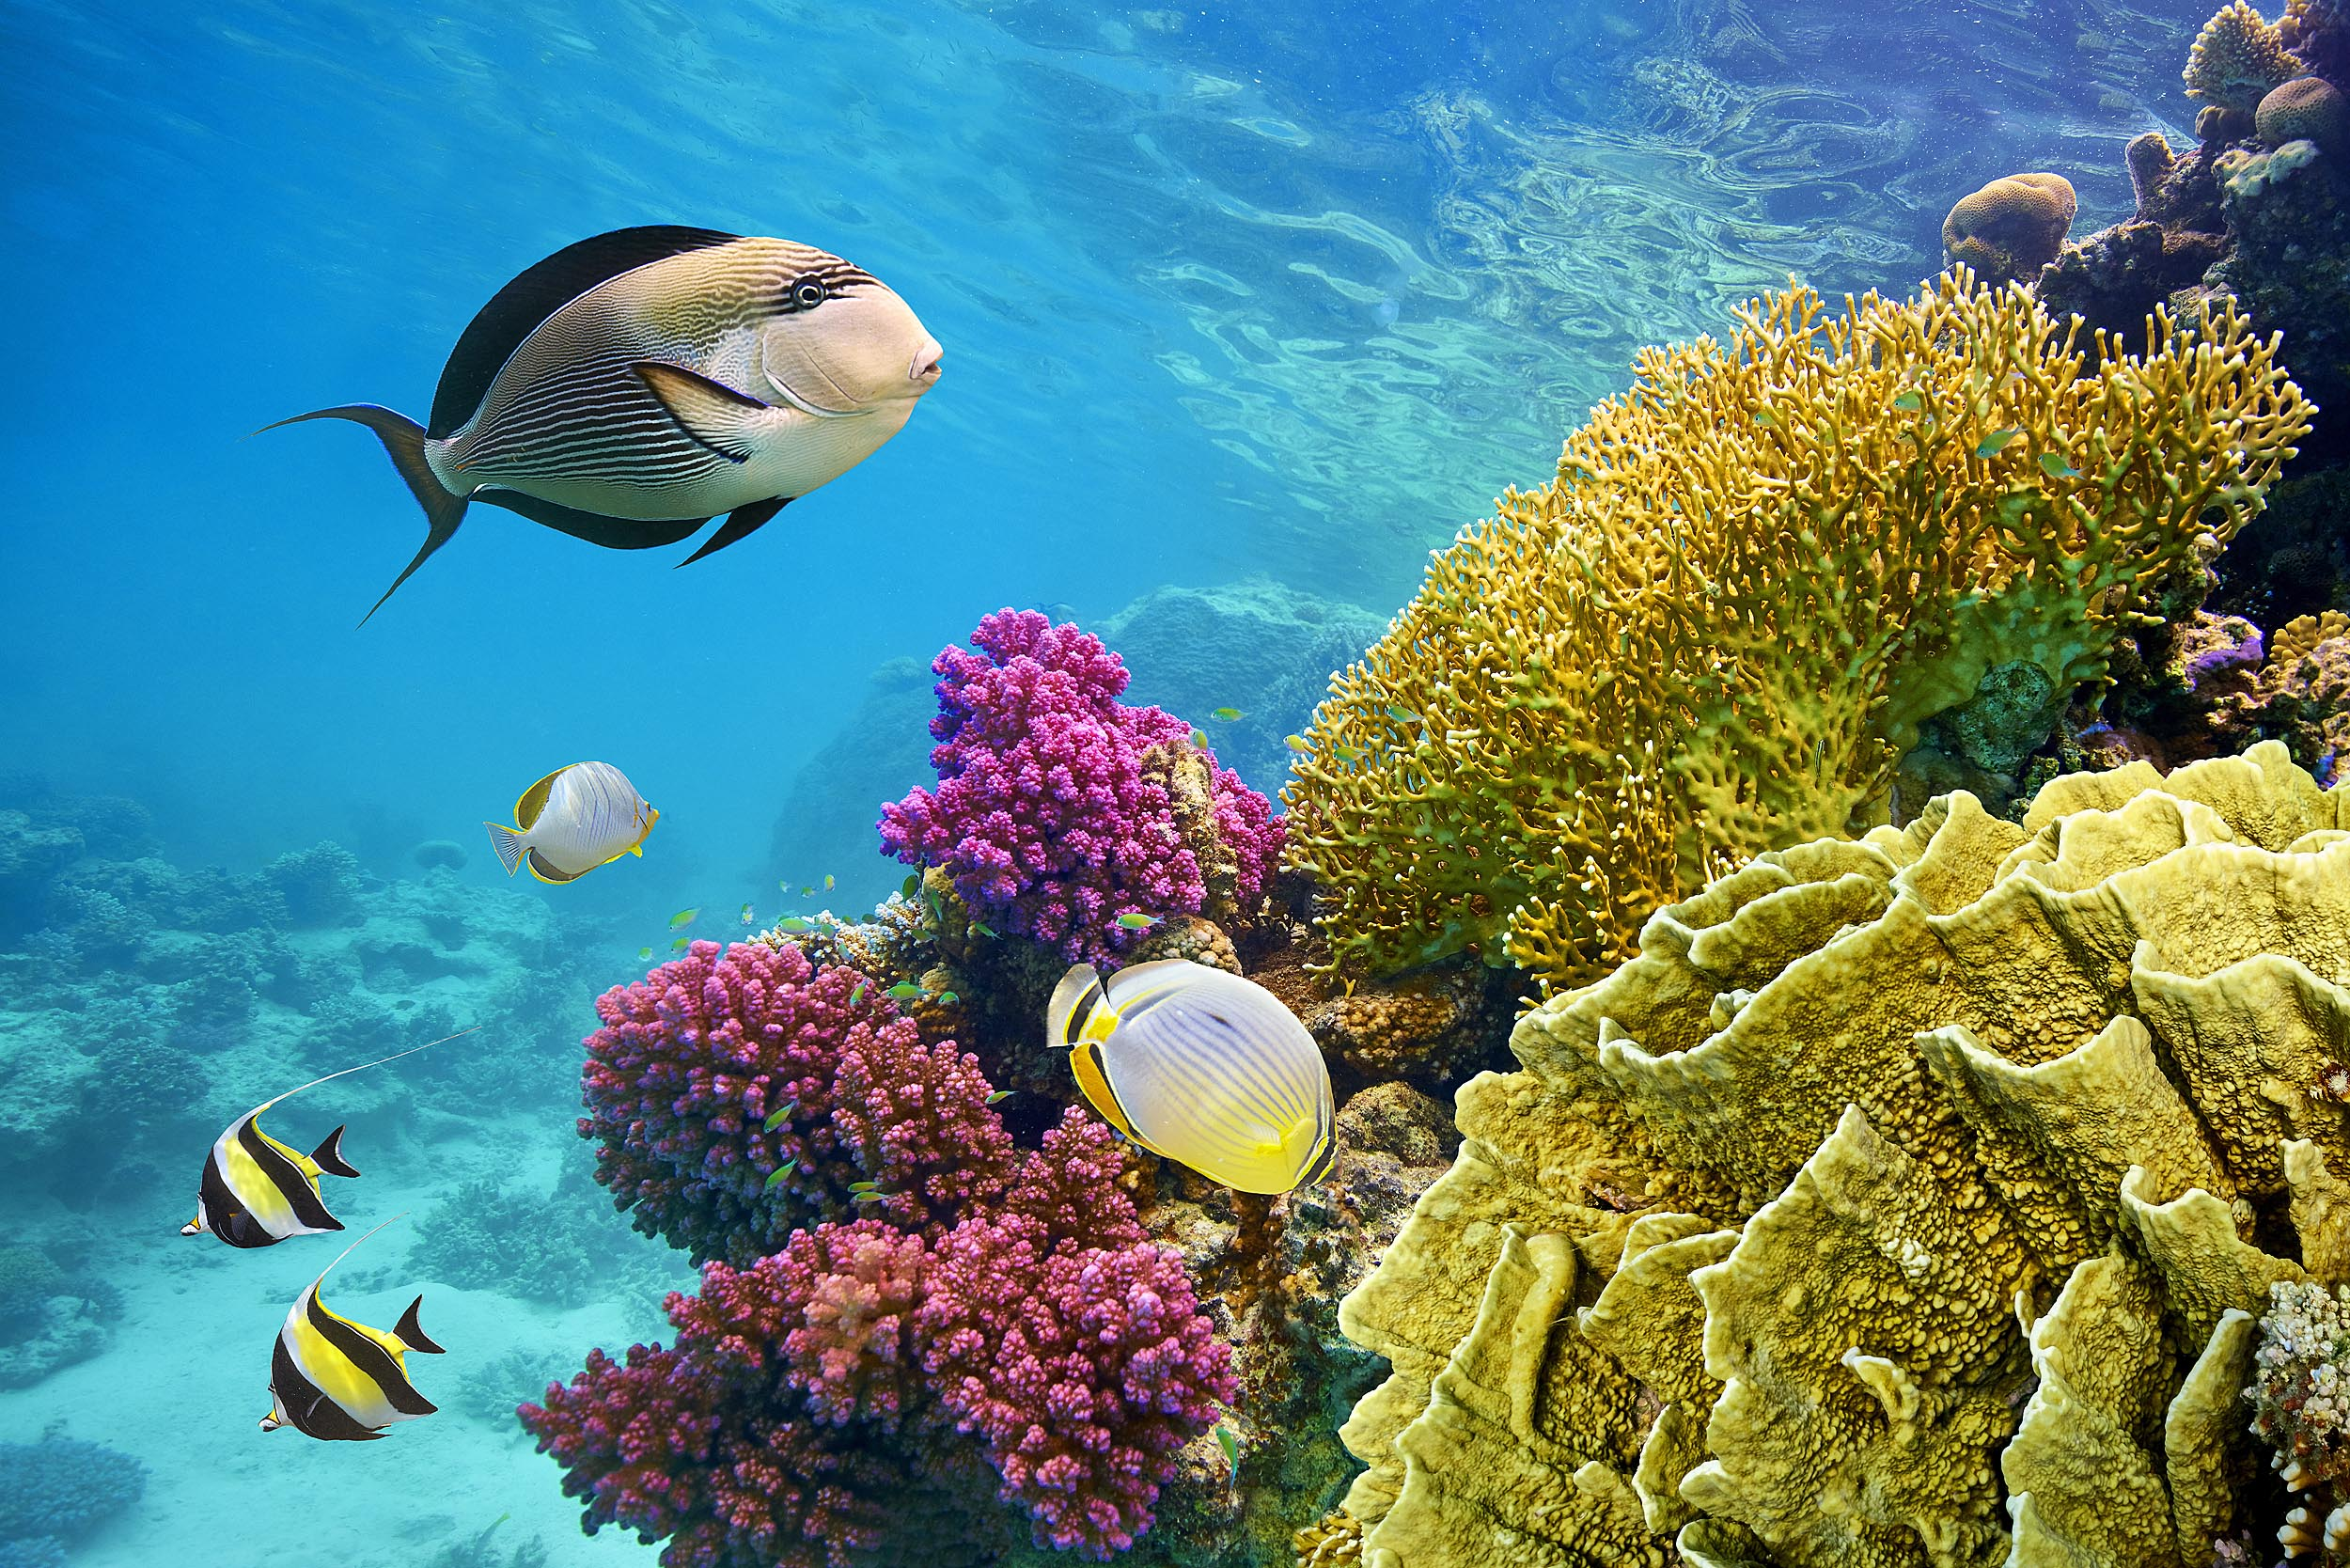 Coral reefs use sound to attract new animals